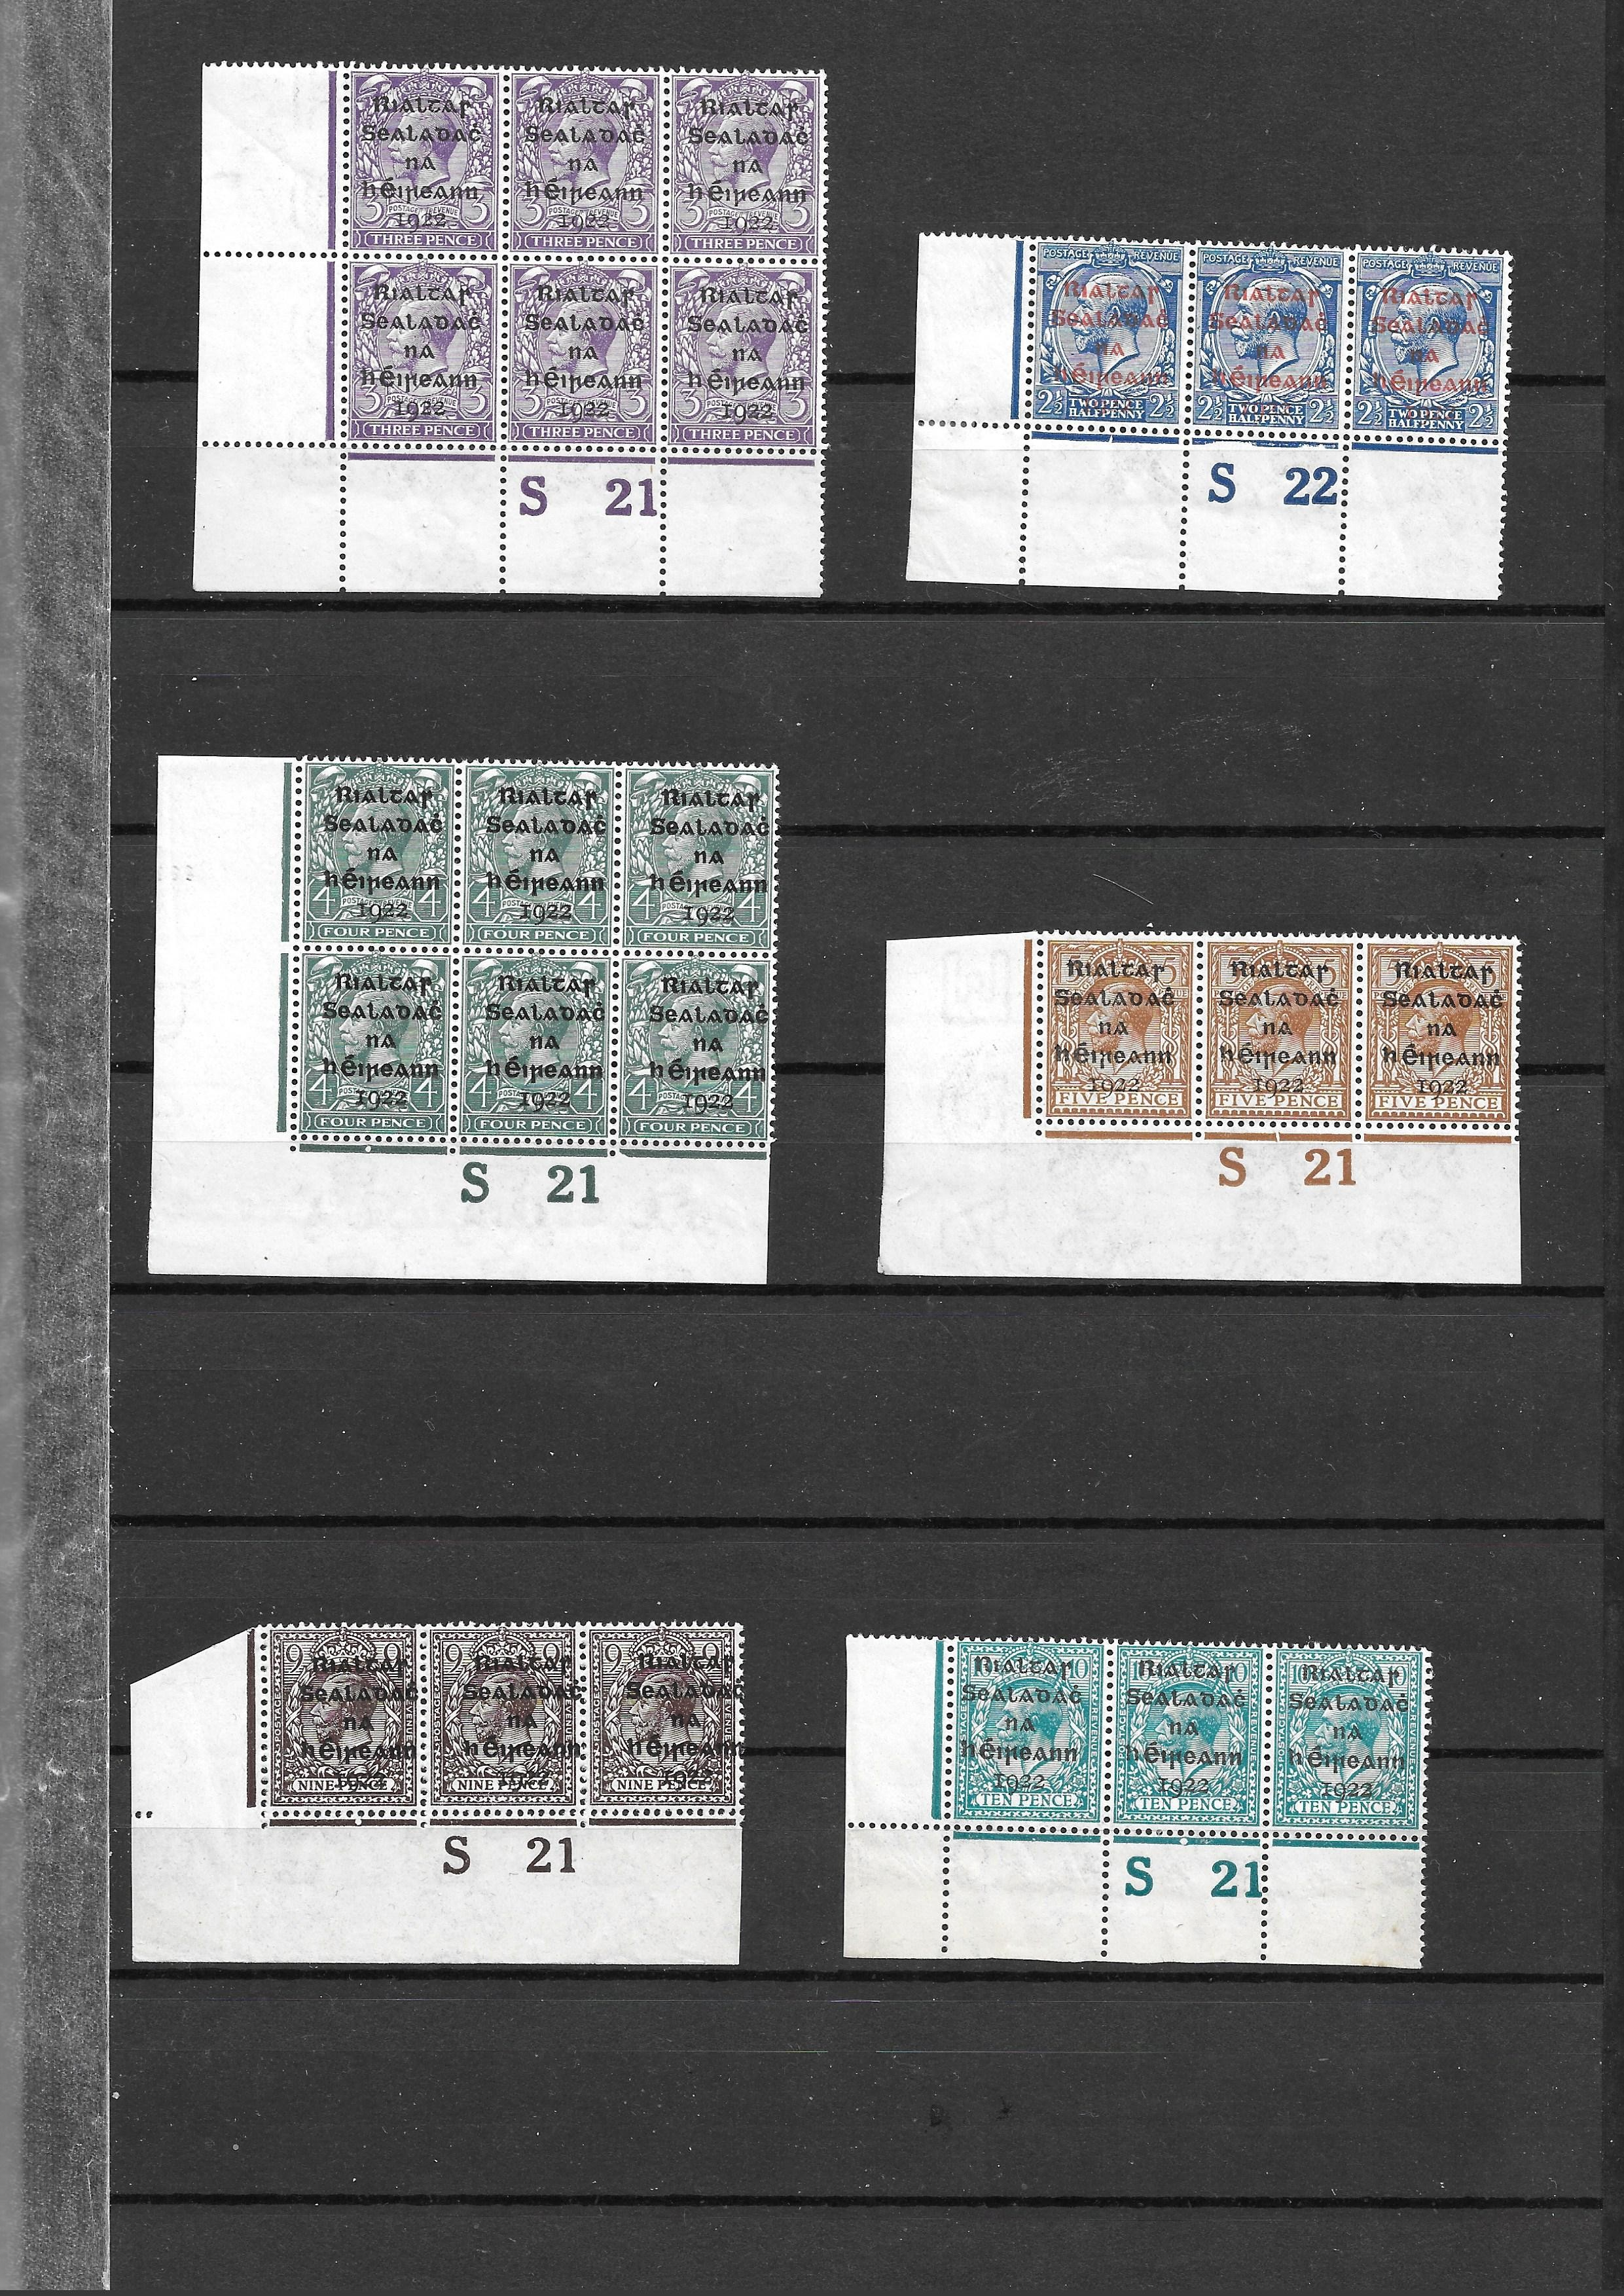 Ireland 1922 GV overprints selection of 21 plate number blocks and strips with values form 1/2d to - Image 5 of 5